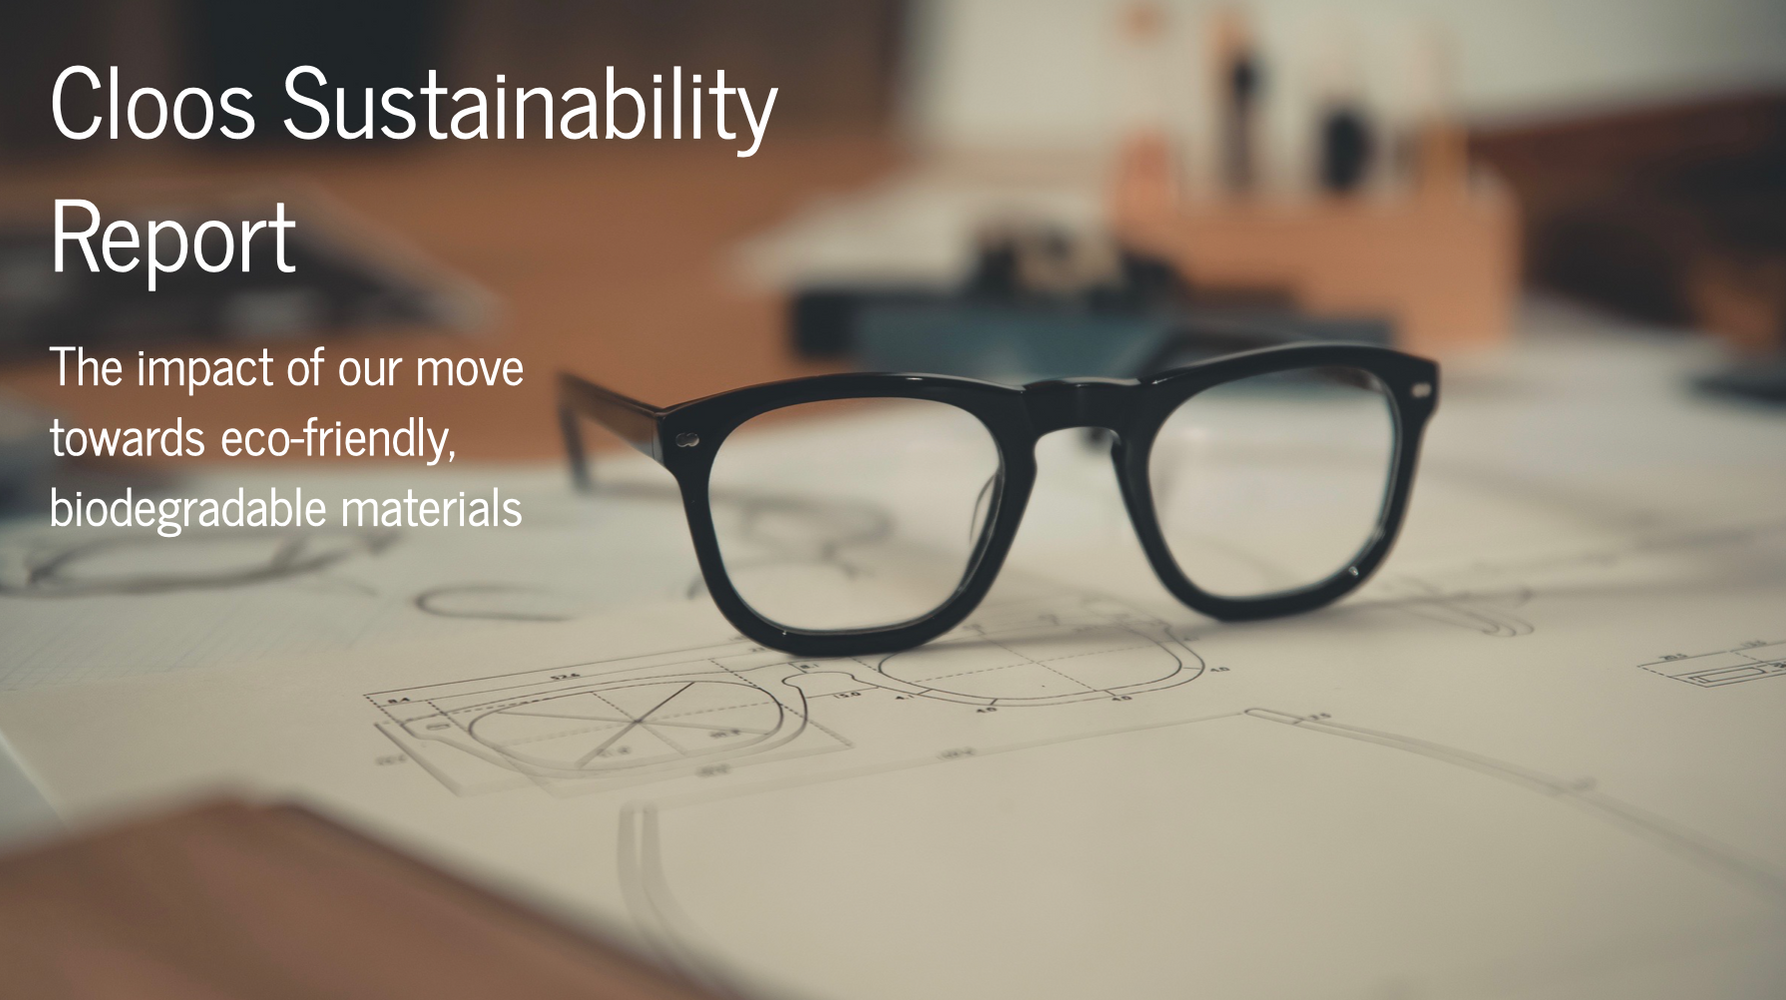 Cloos Sustainability Report: The Impact of our Eco-friendly, Biodegradable Acetate